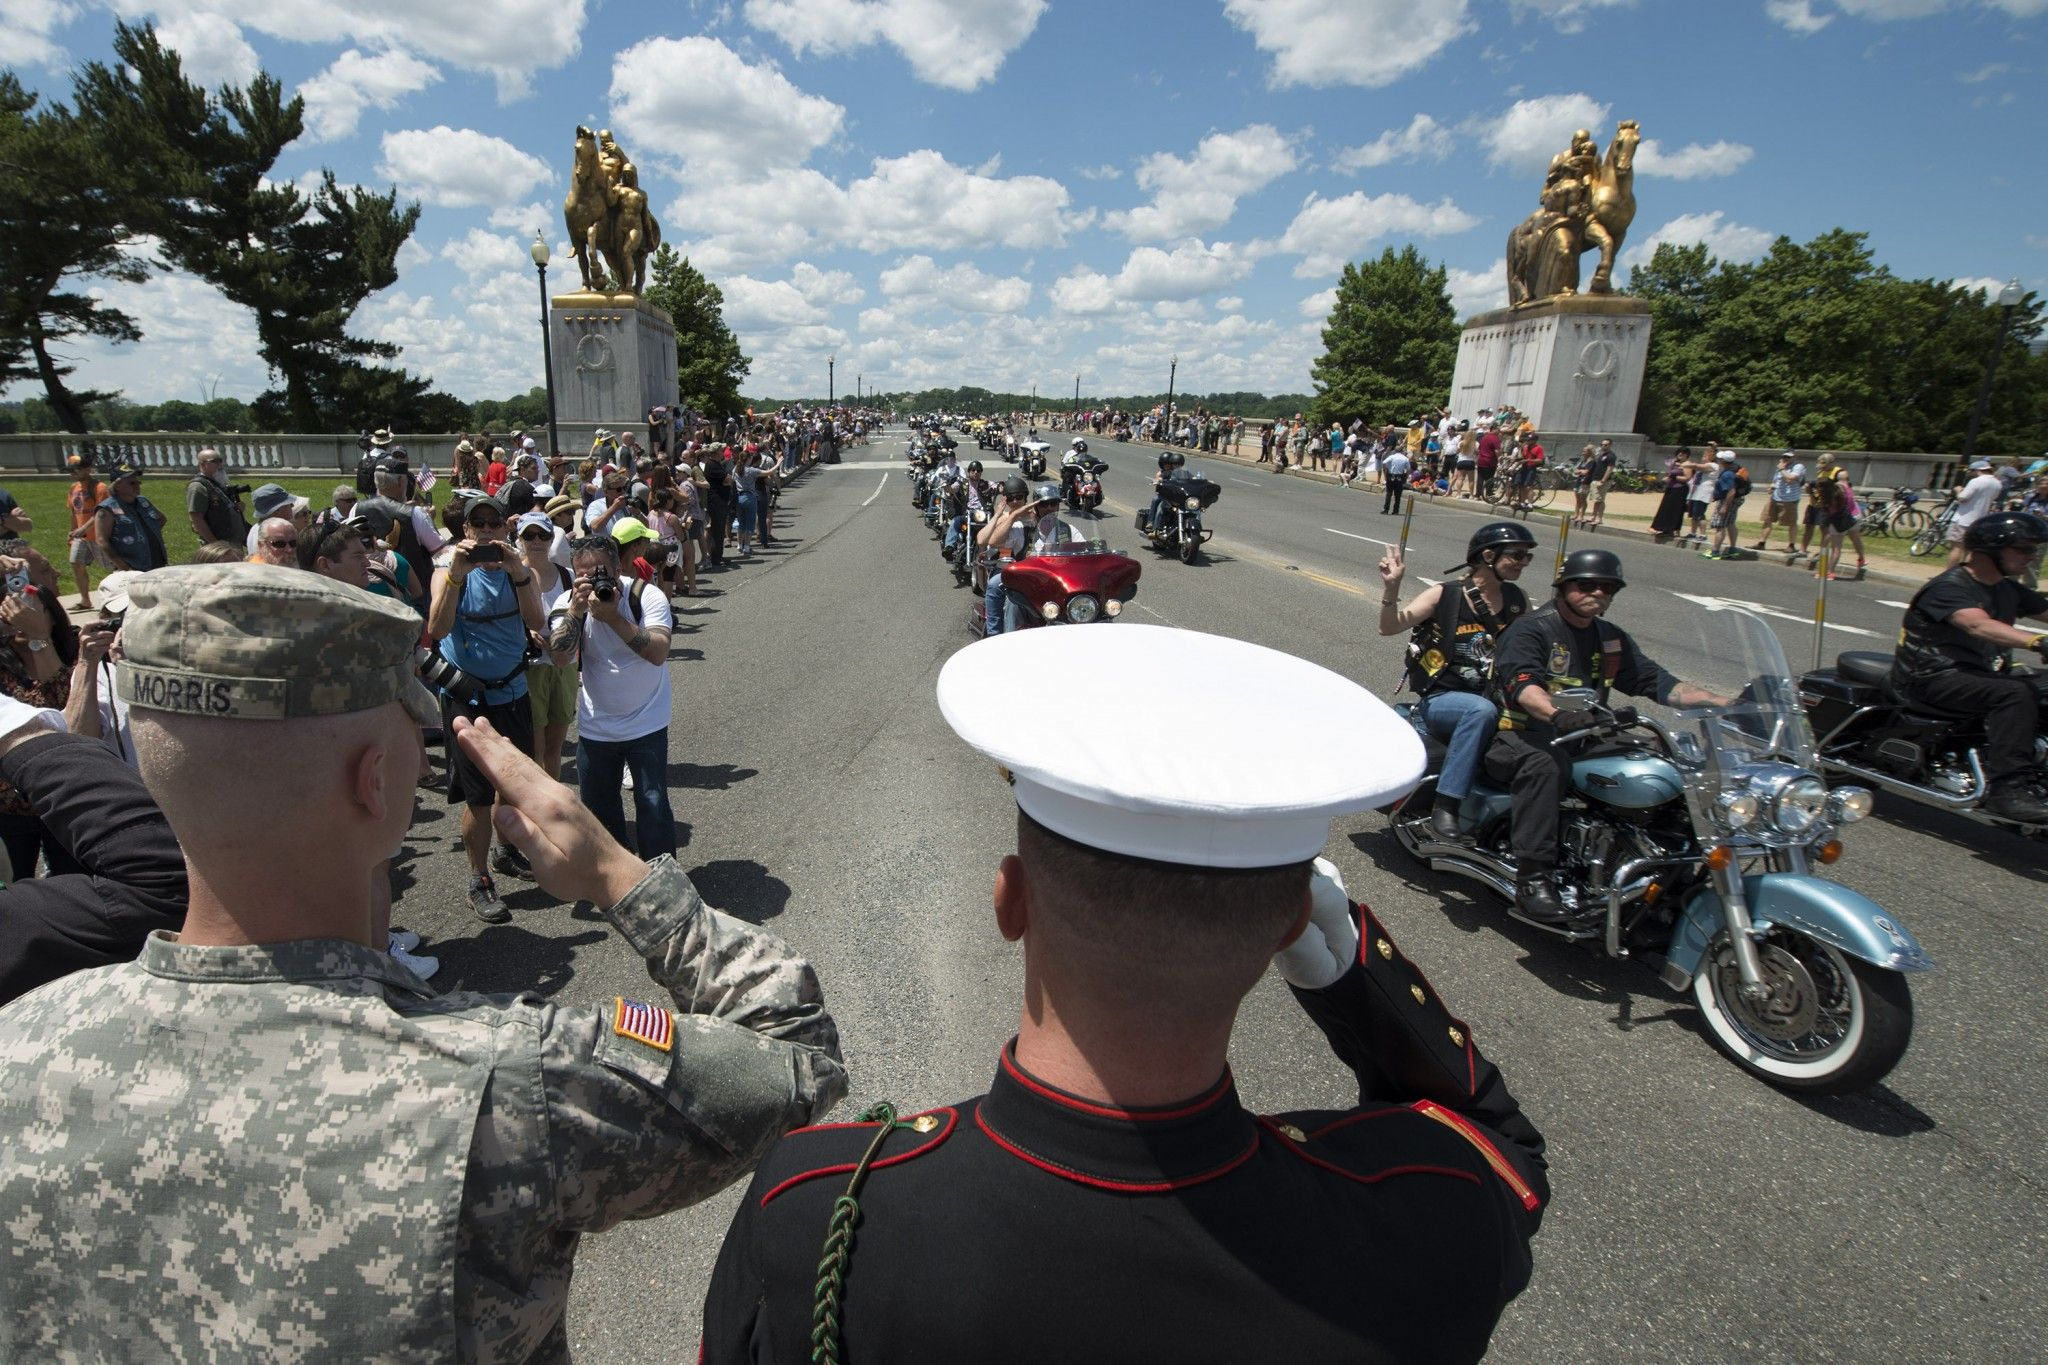 Hero worship of the military is getting in the way of good